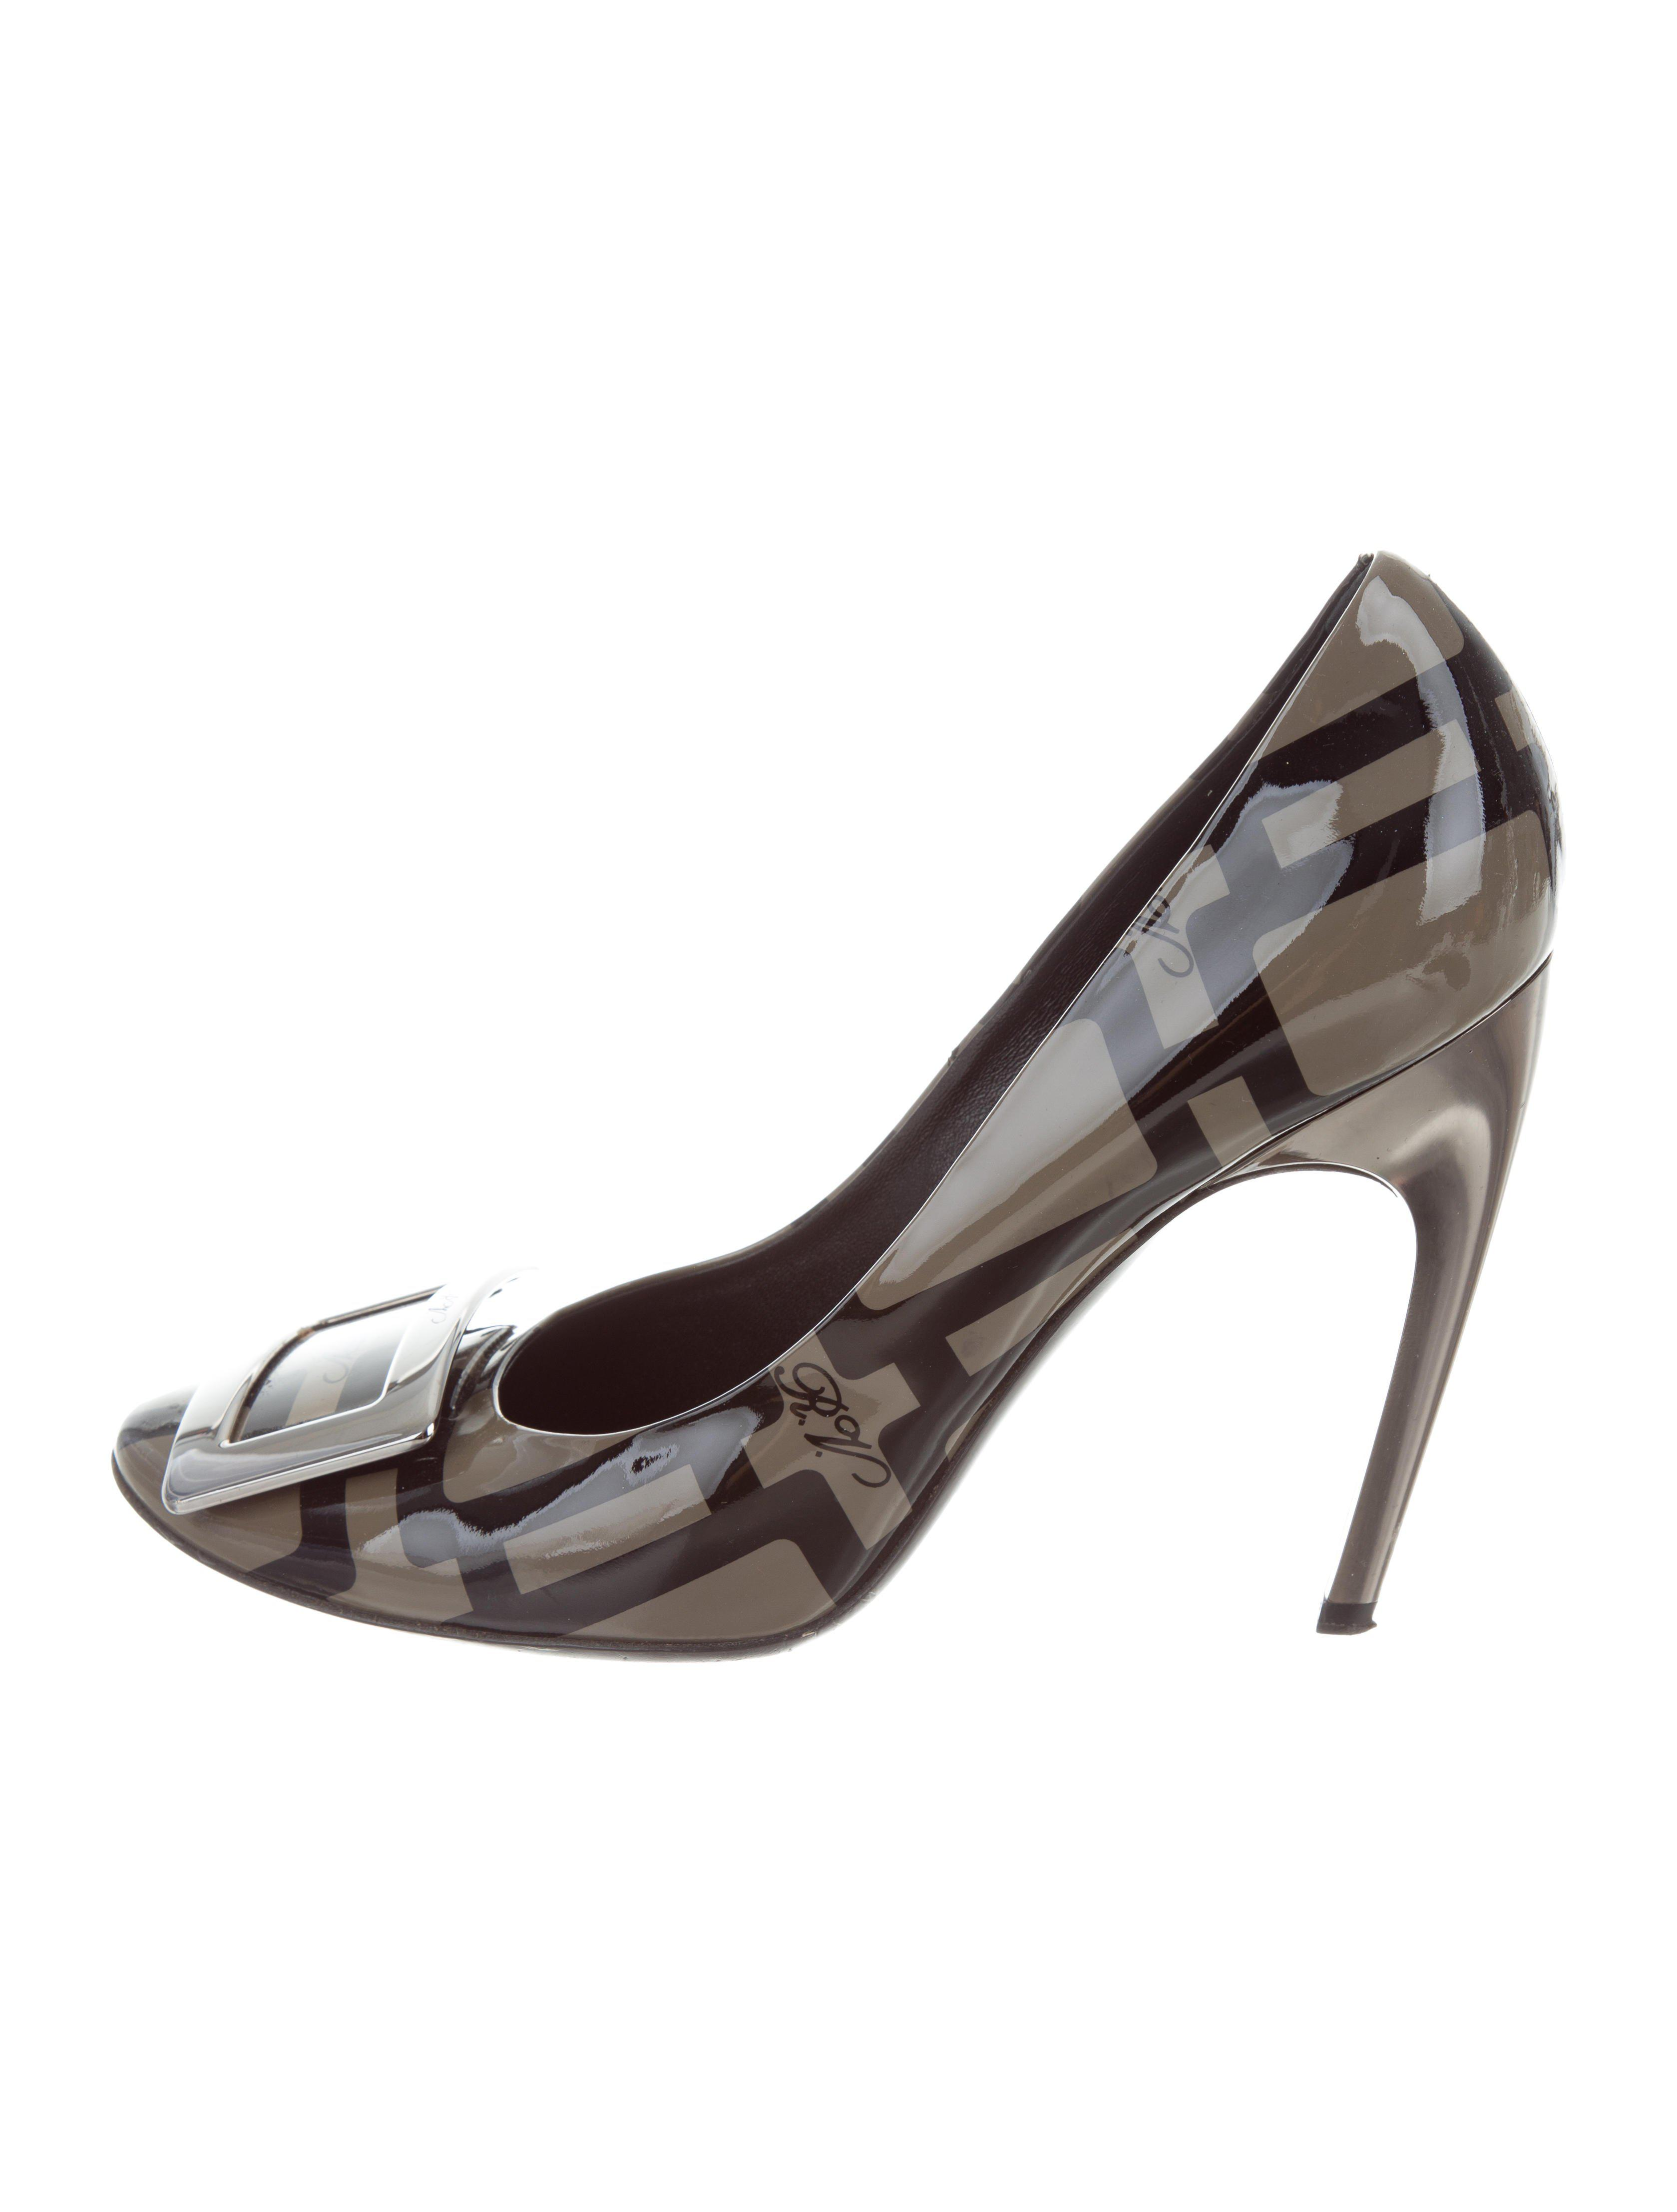 Roger Vivier Printed Buckle-Accented Pumps for cheap c7z0GR